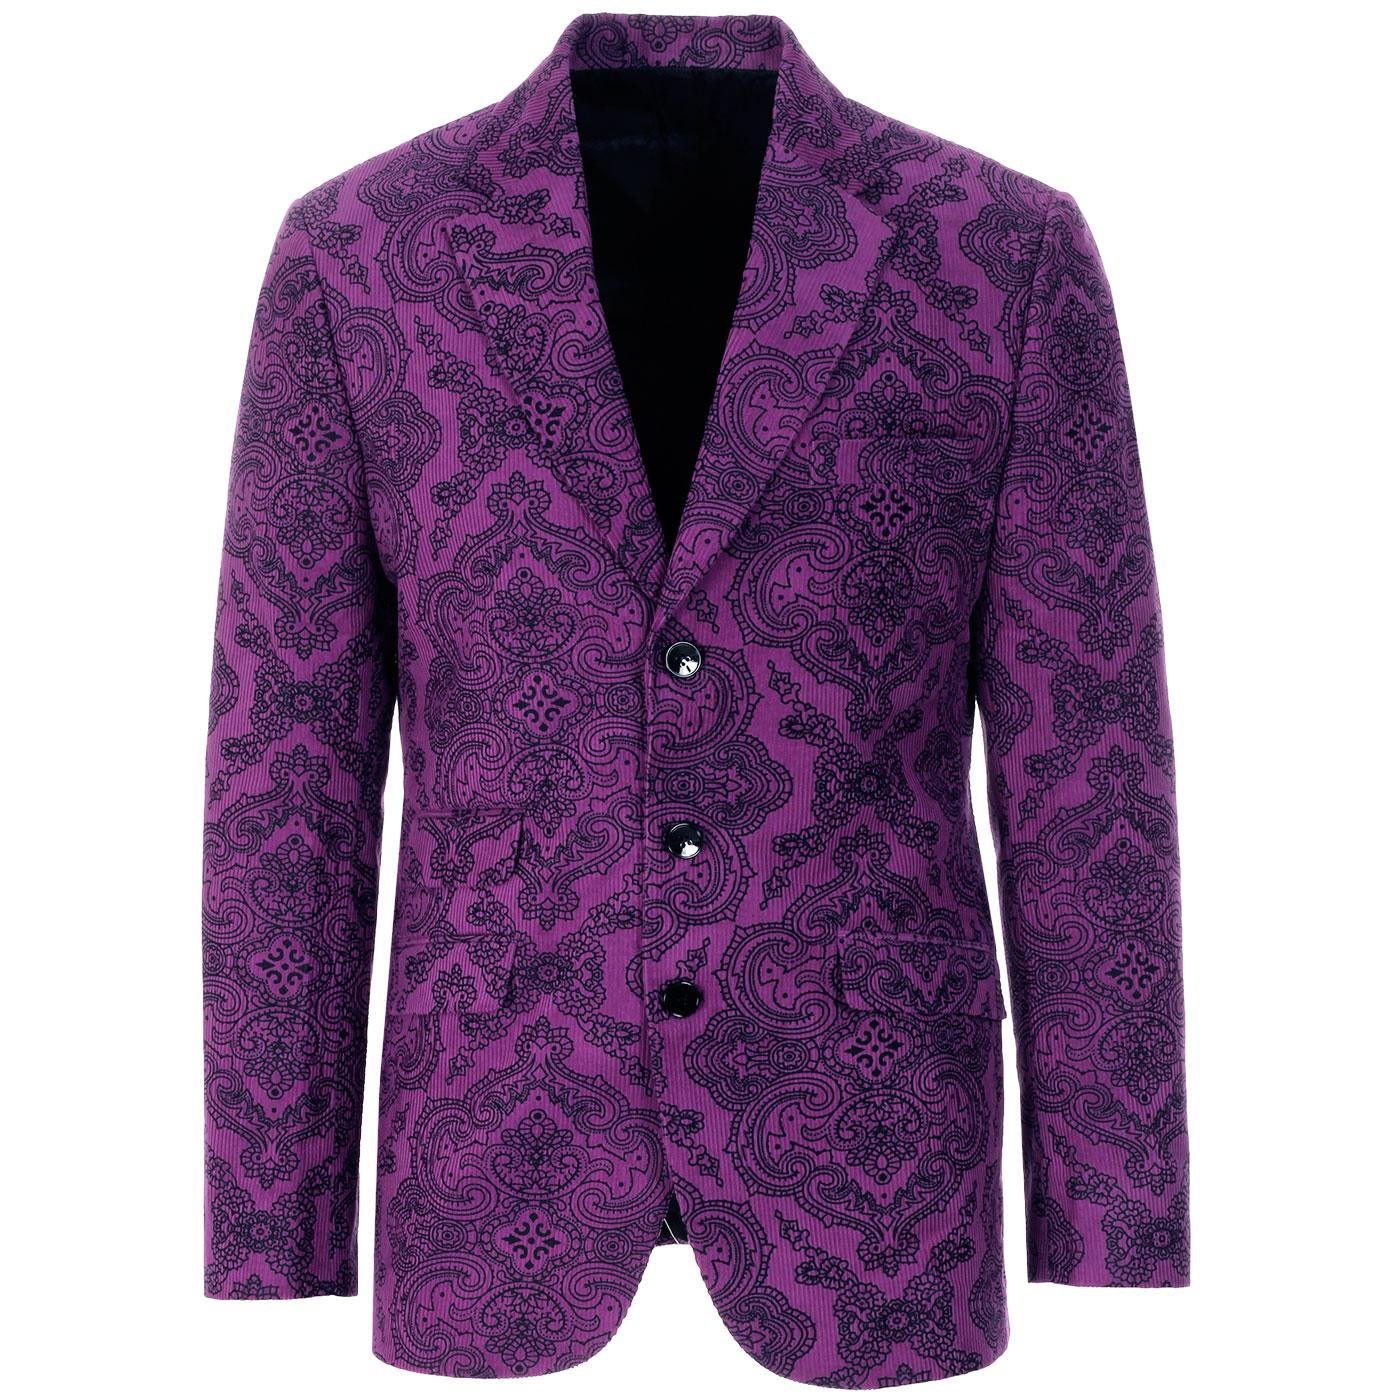 Madcap England Men's 1960s Psychedelic Paisley Cord Blazer Jacket in Grape